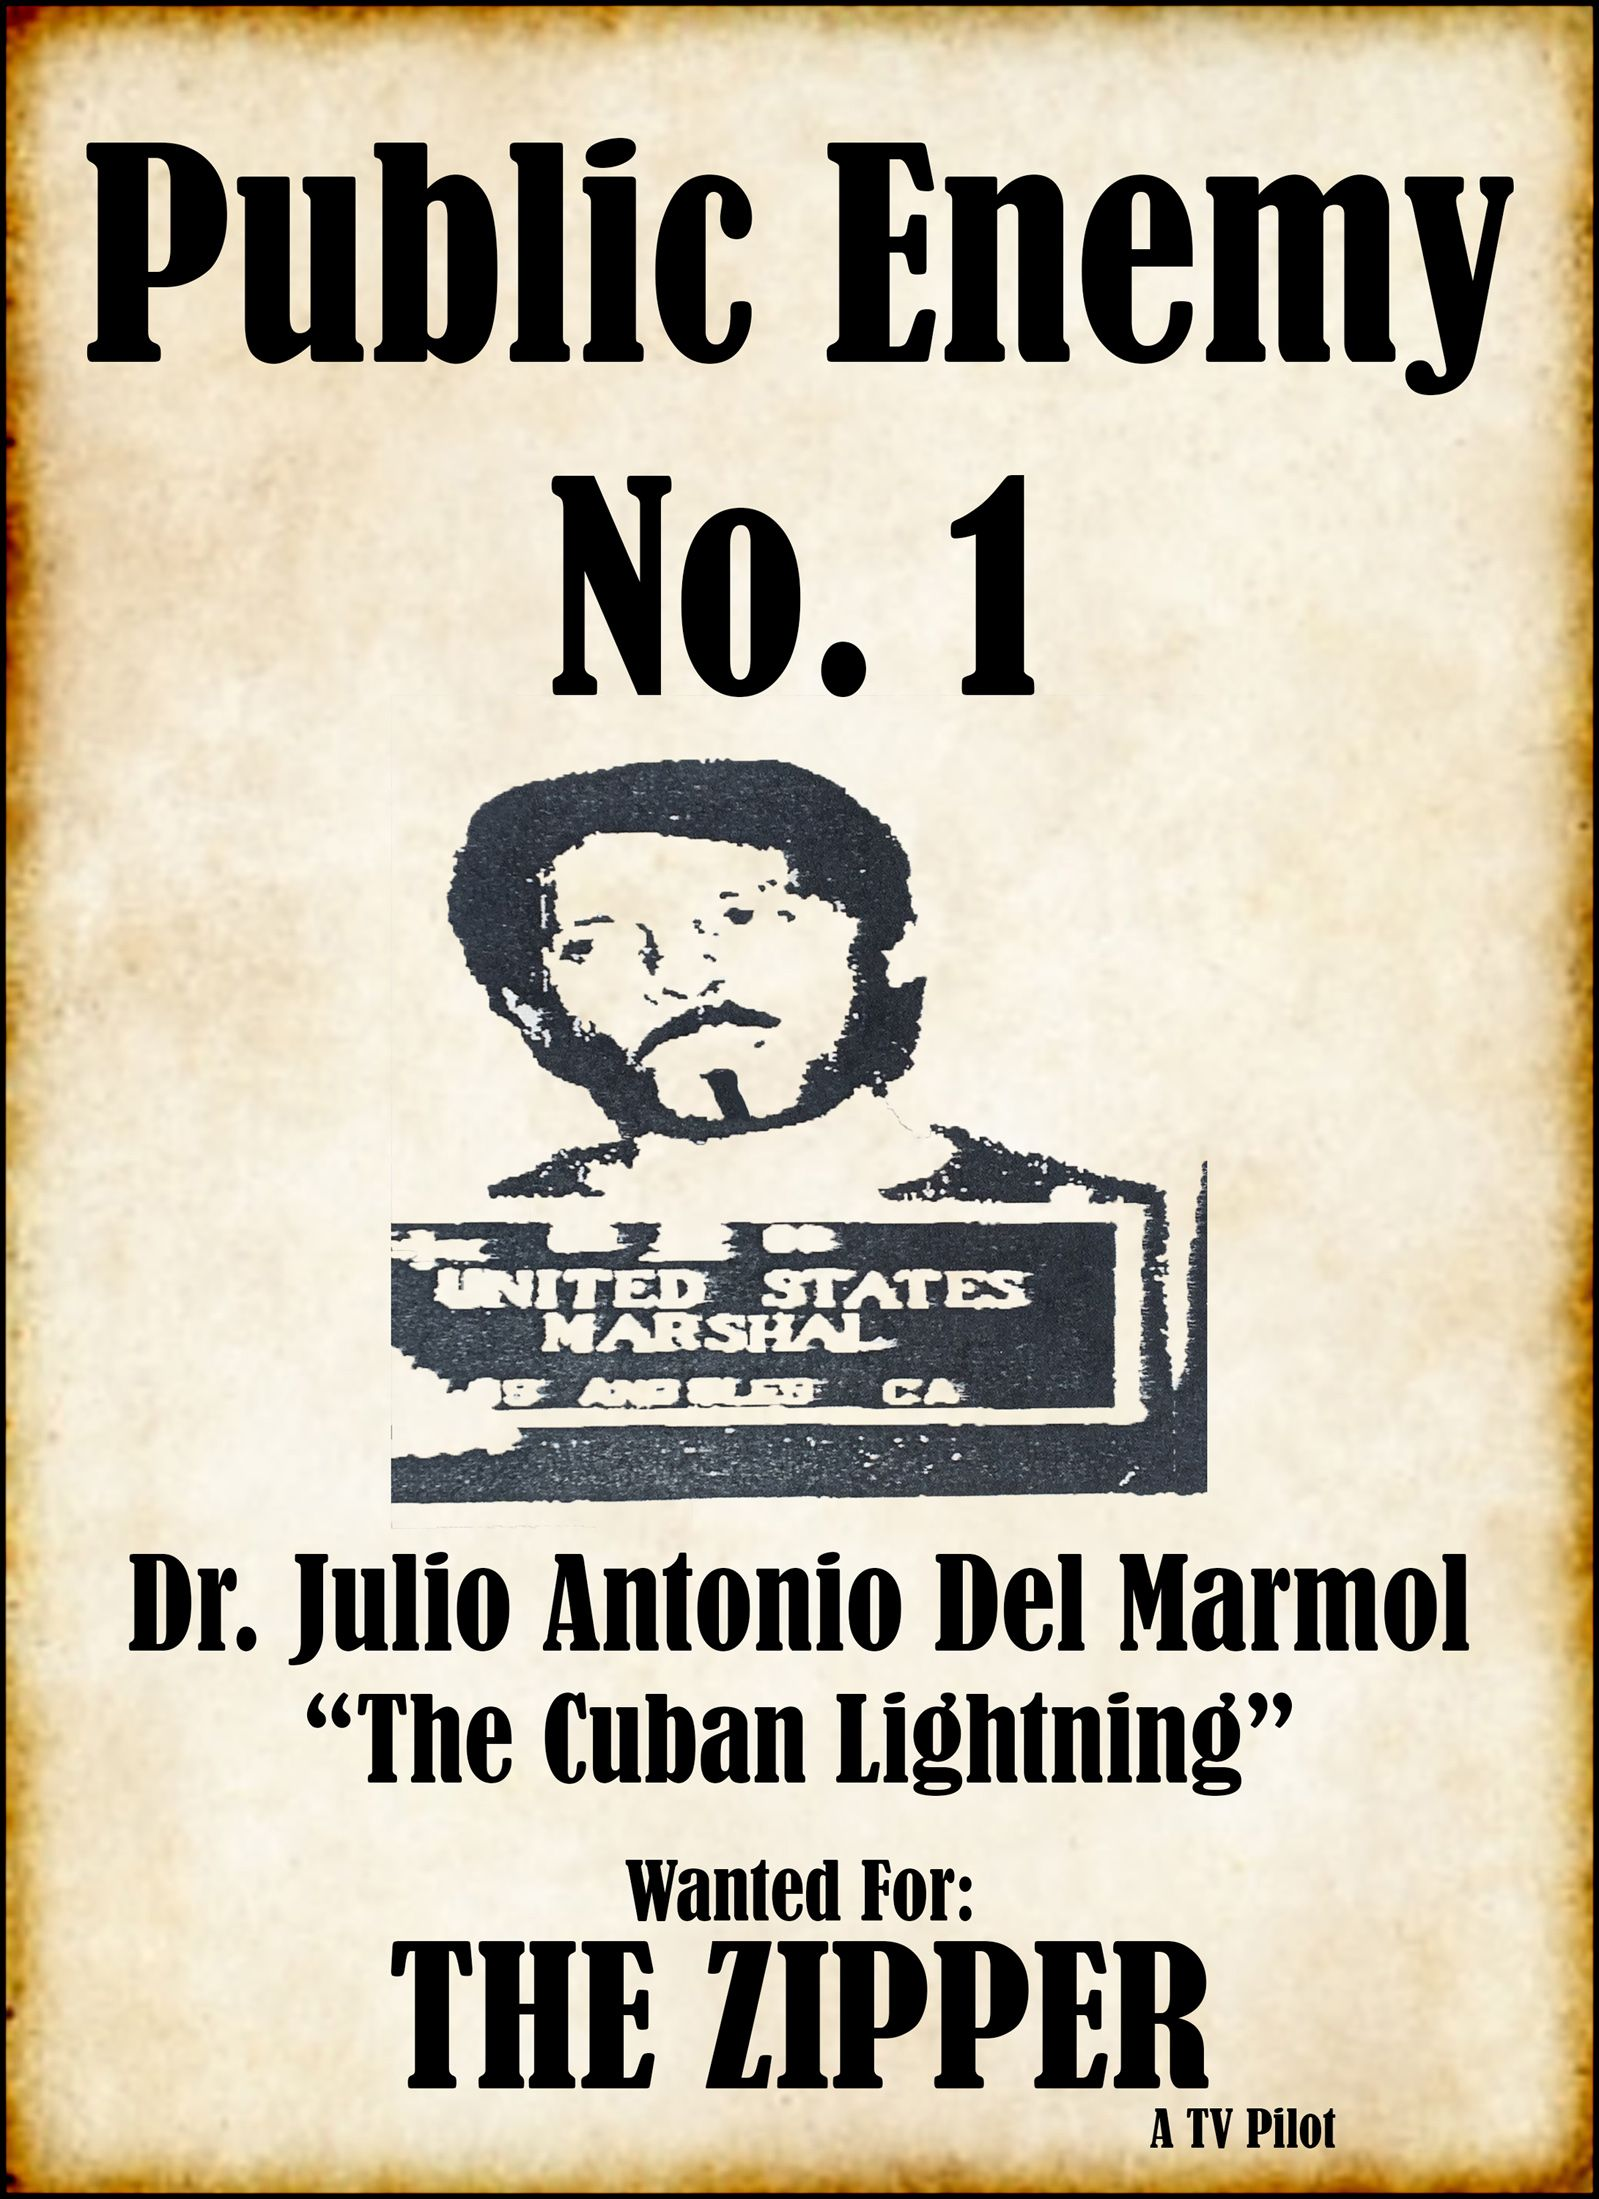 Castro named him Public Enemy Number One